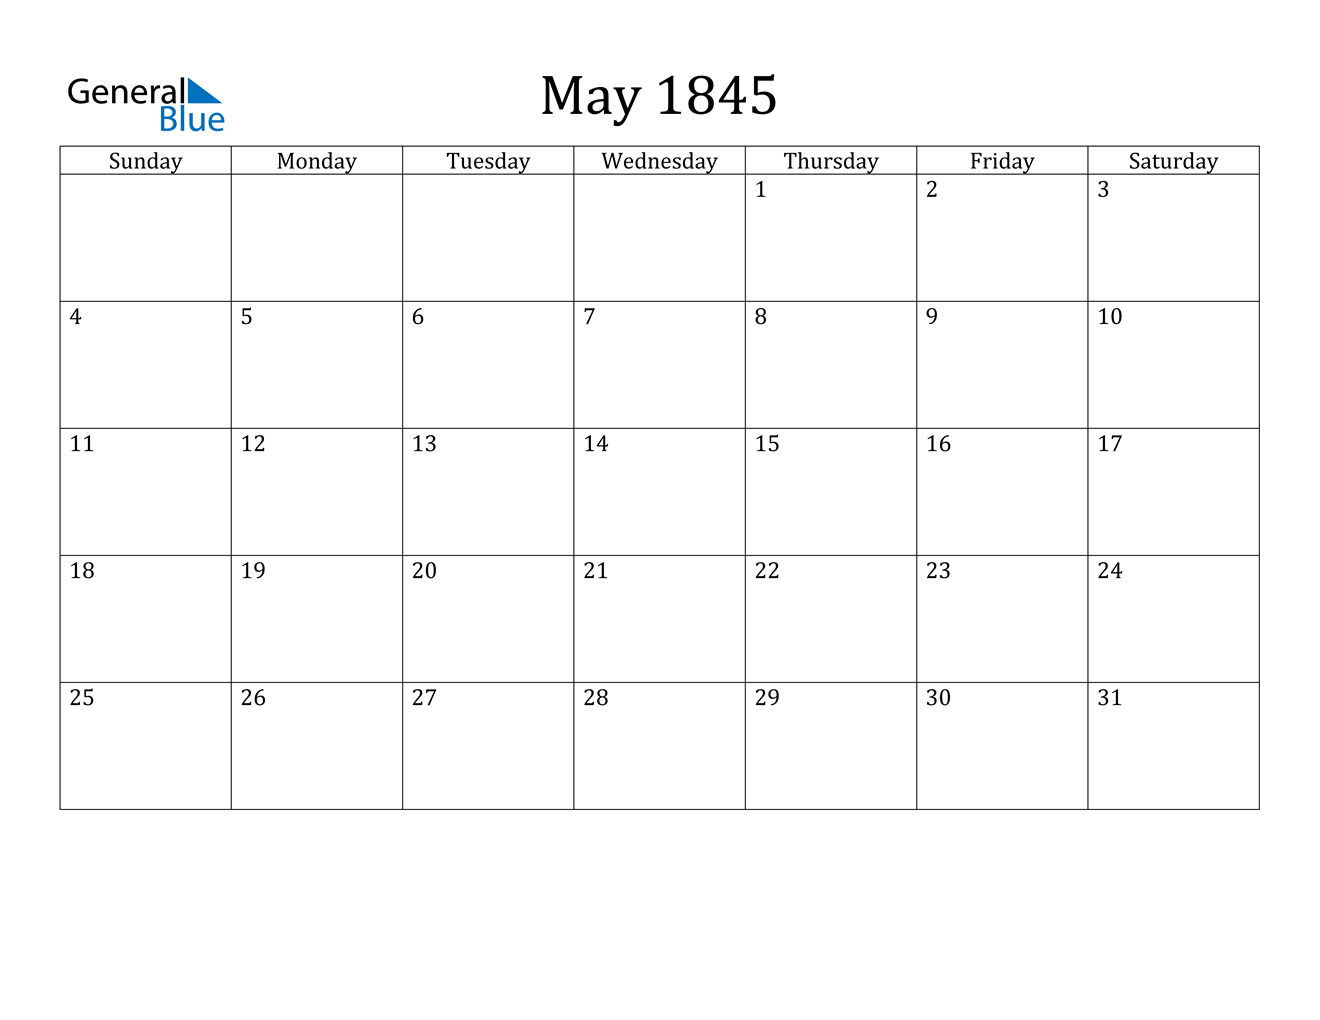 Image of May 1845 Calendar